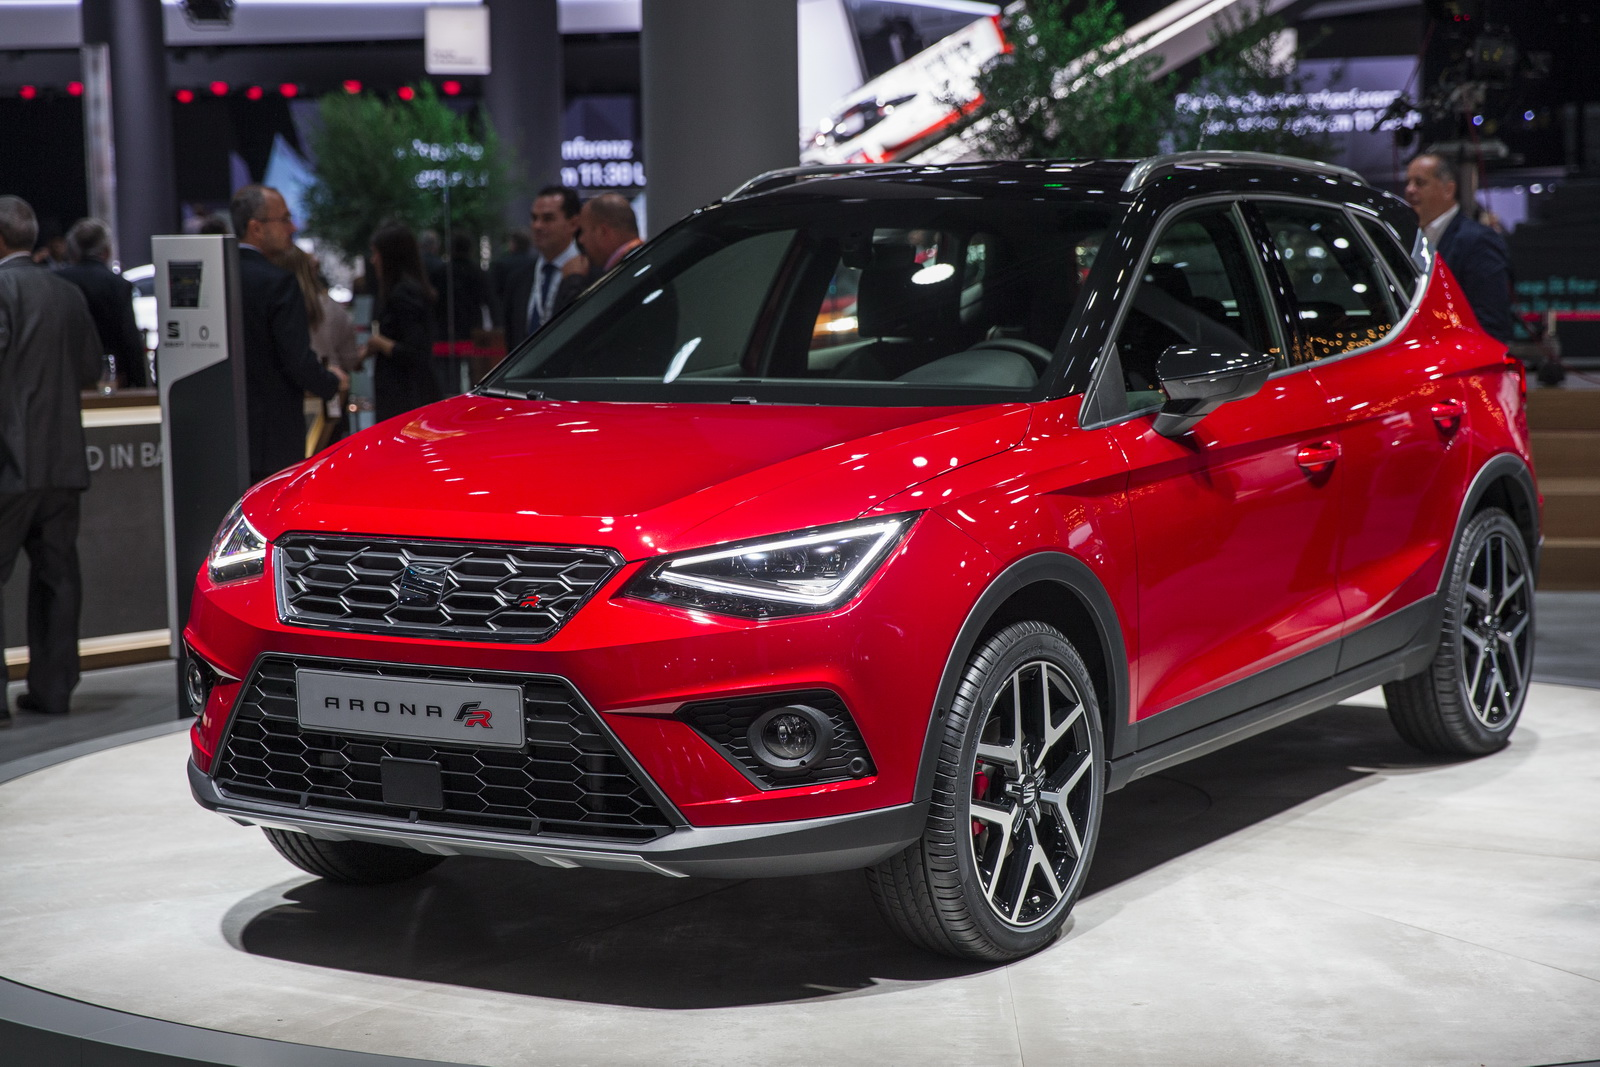 2018 seat arona compact crossover revealed in barcelona. Black Bedroom Furniture Sets. Home Design Ideas